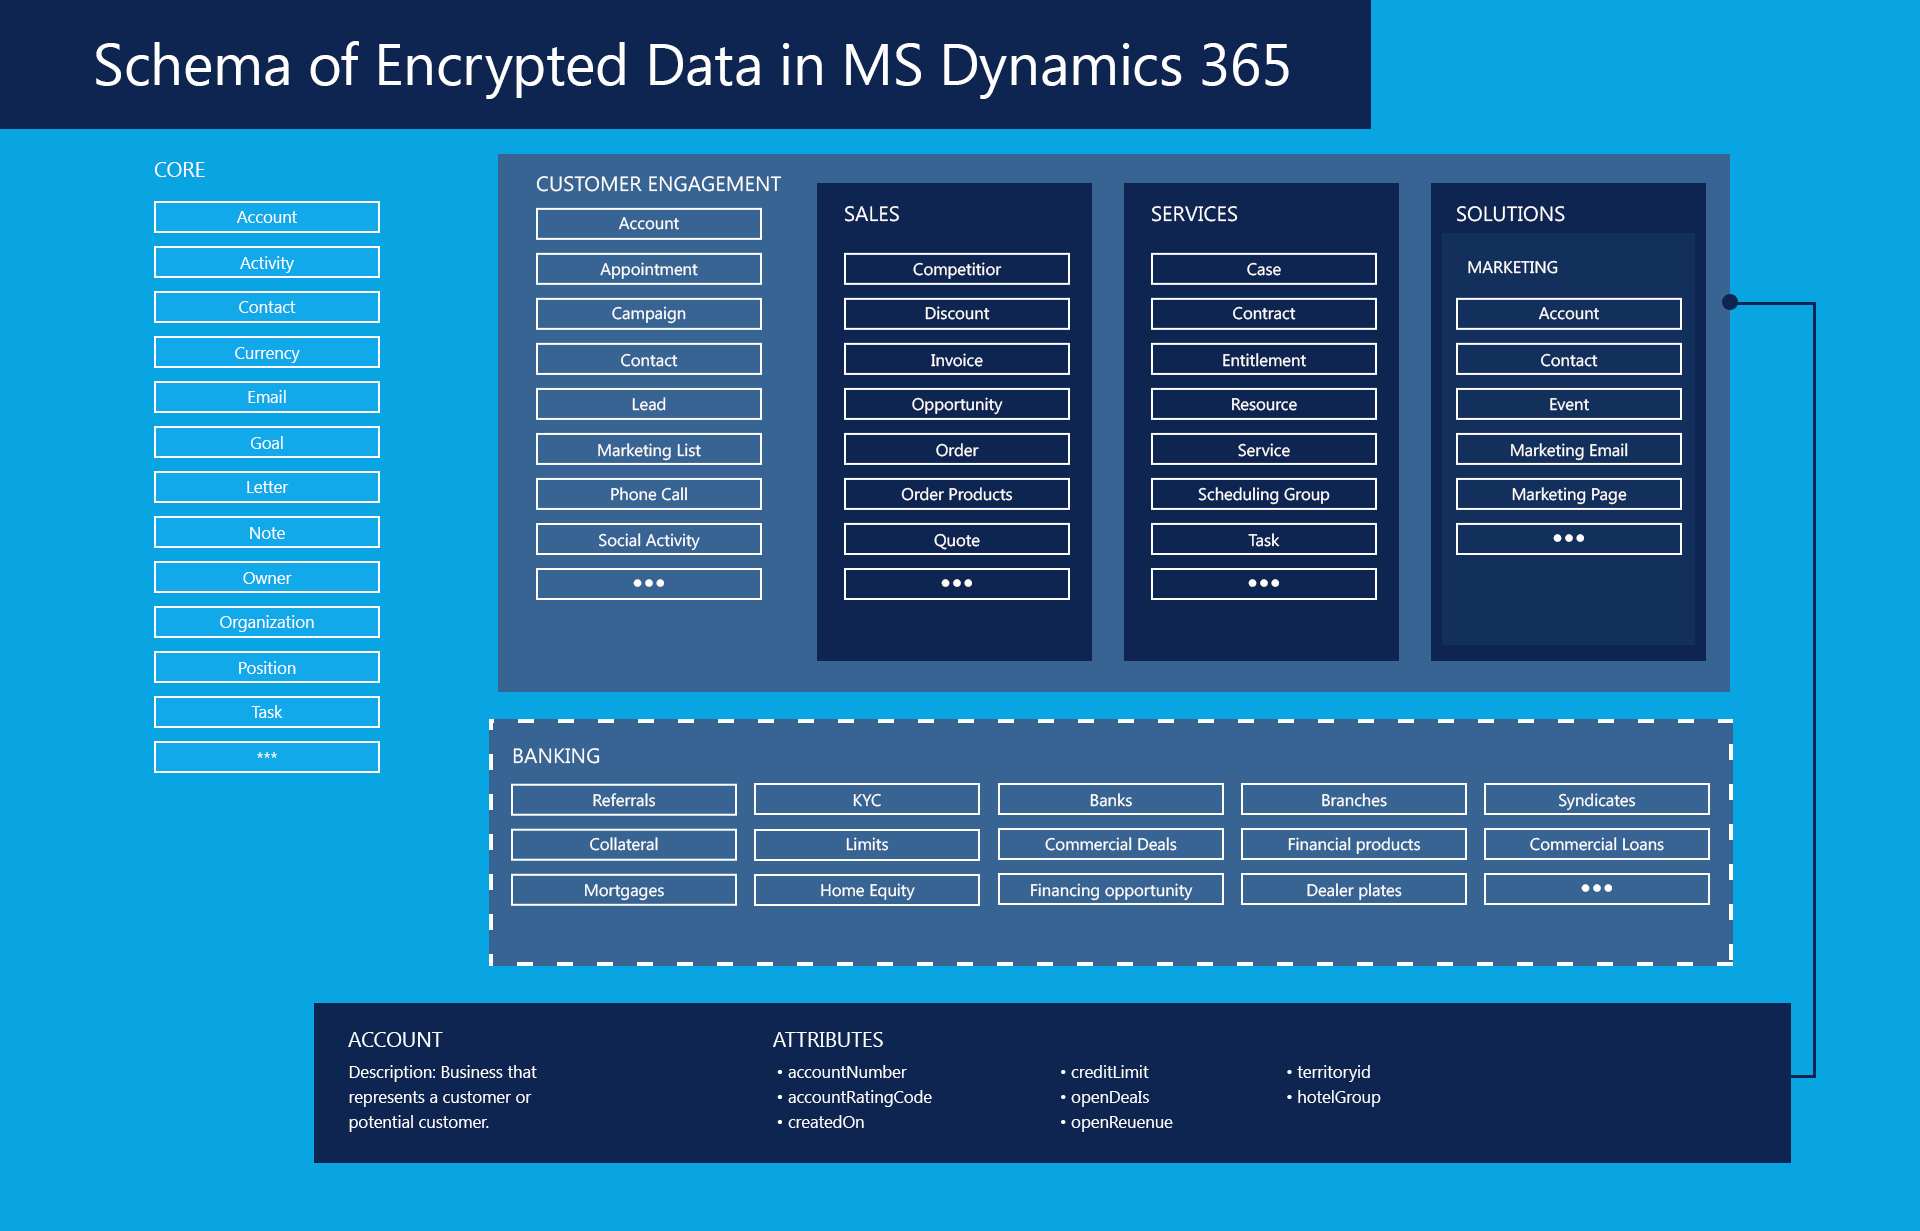 Schema-of-Encrypted-Data-in-MS-Dynamics-365